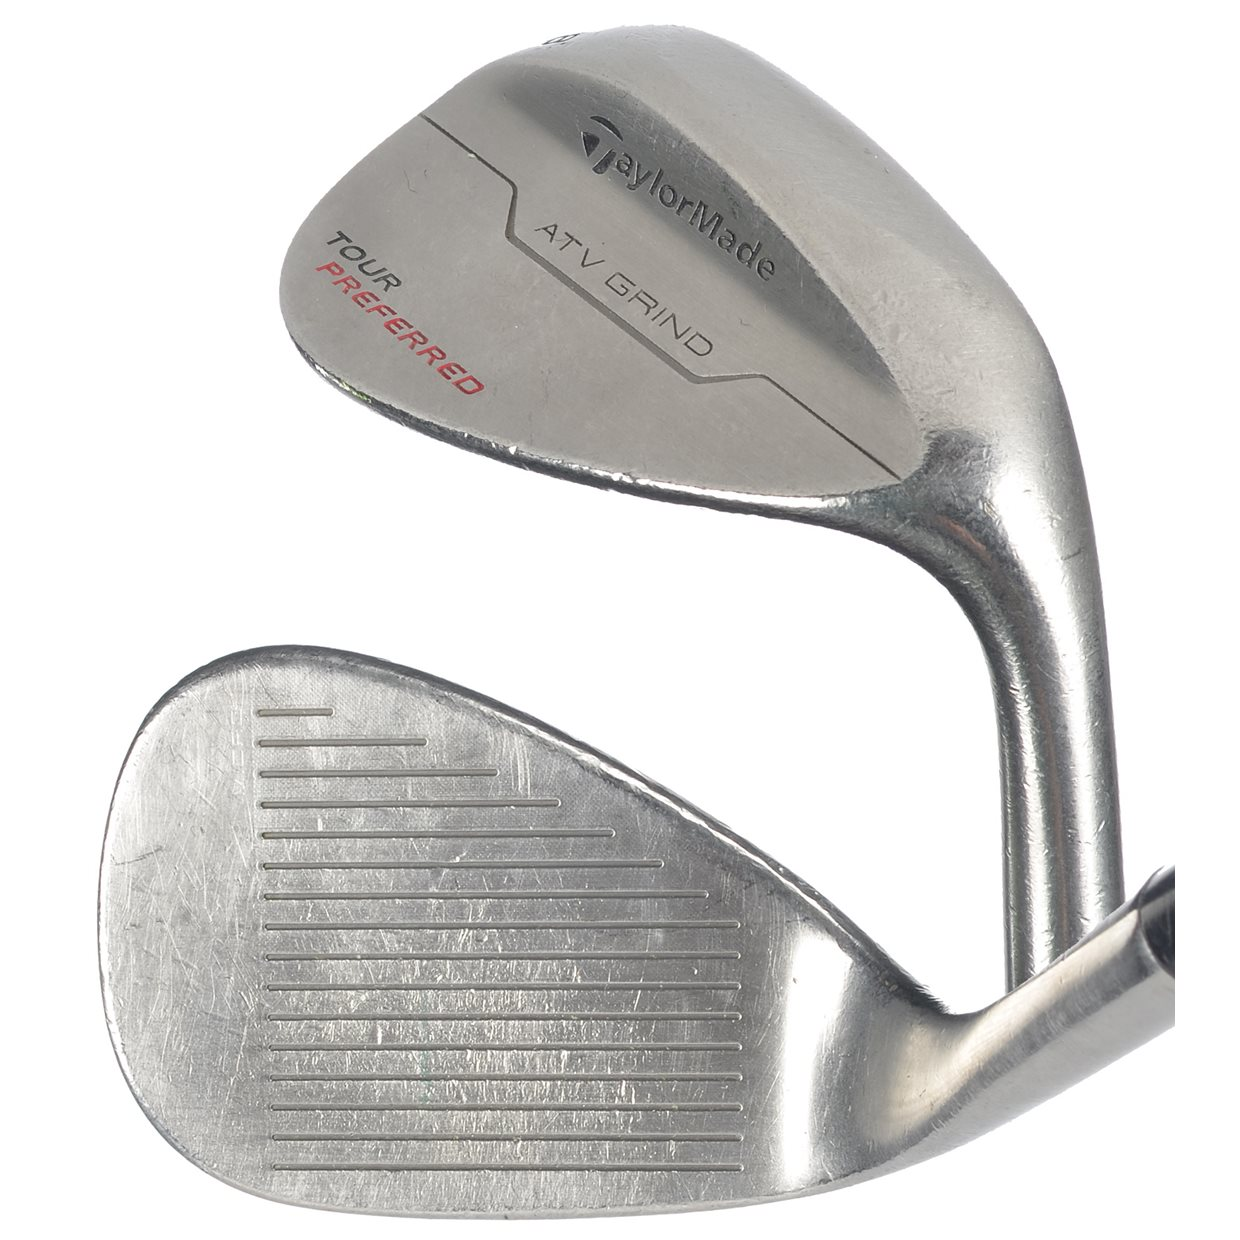 0f533a401f4 TaylorMade Tour Preferred ATV Wedge Sand Wedge 56 Degree Used Golf ...